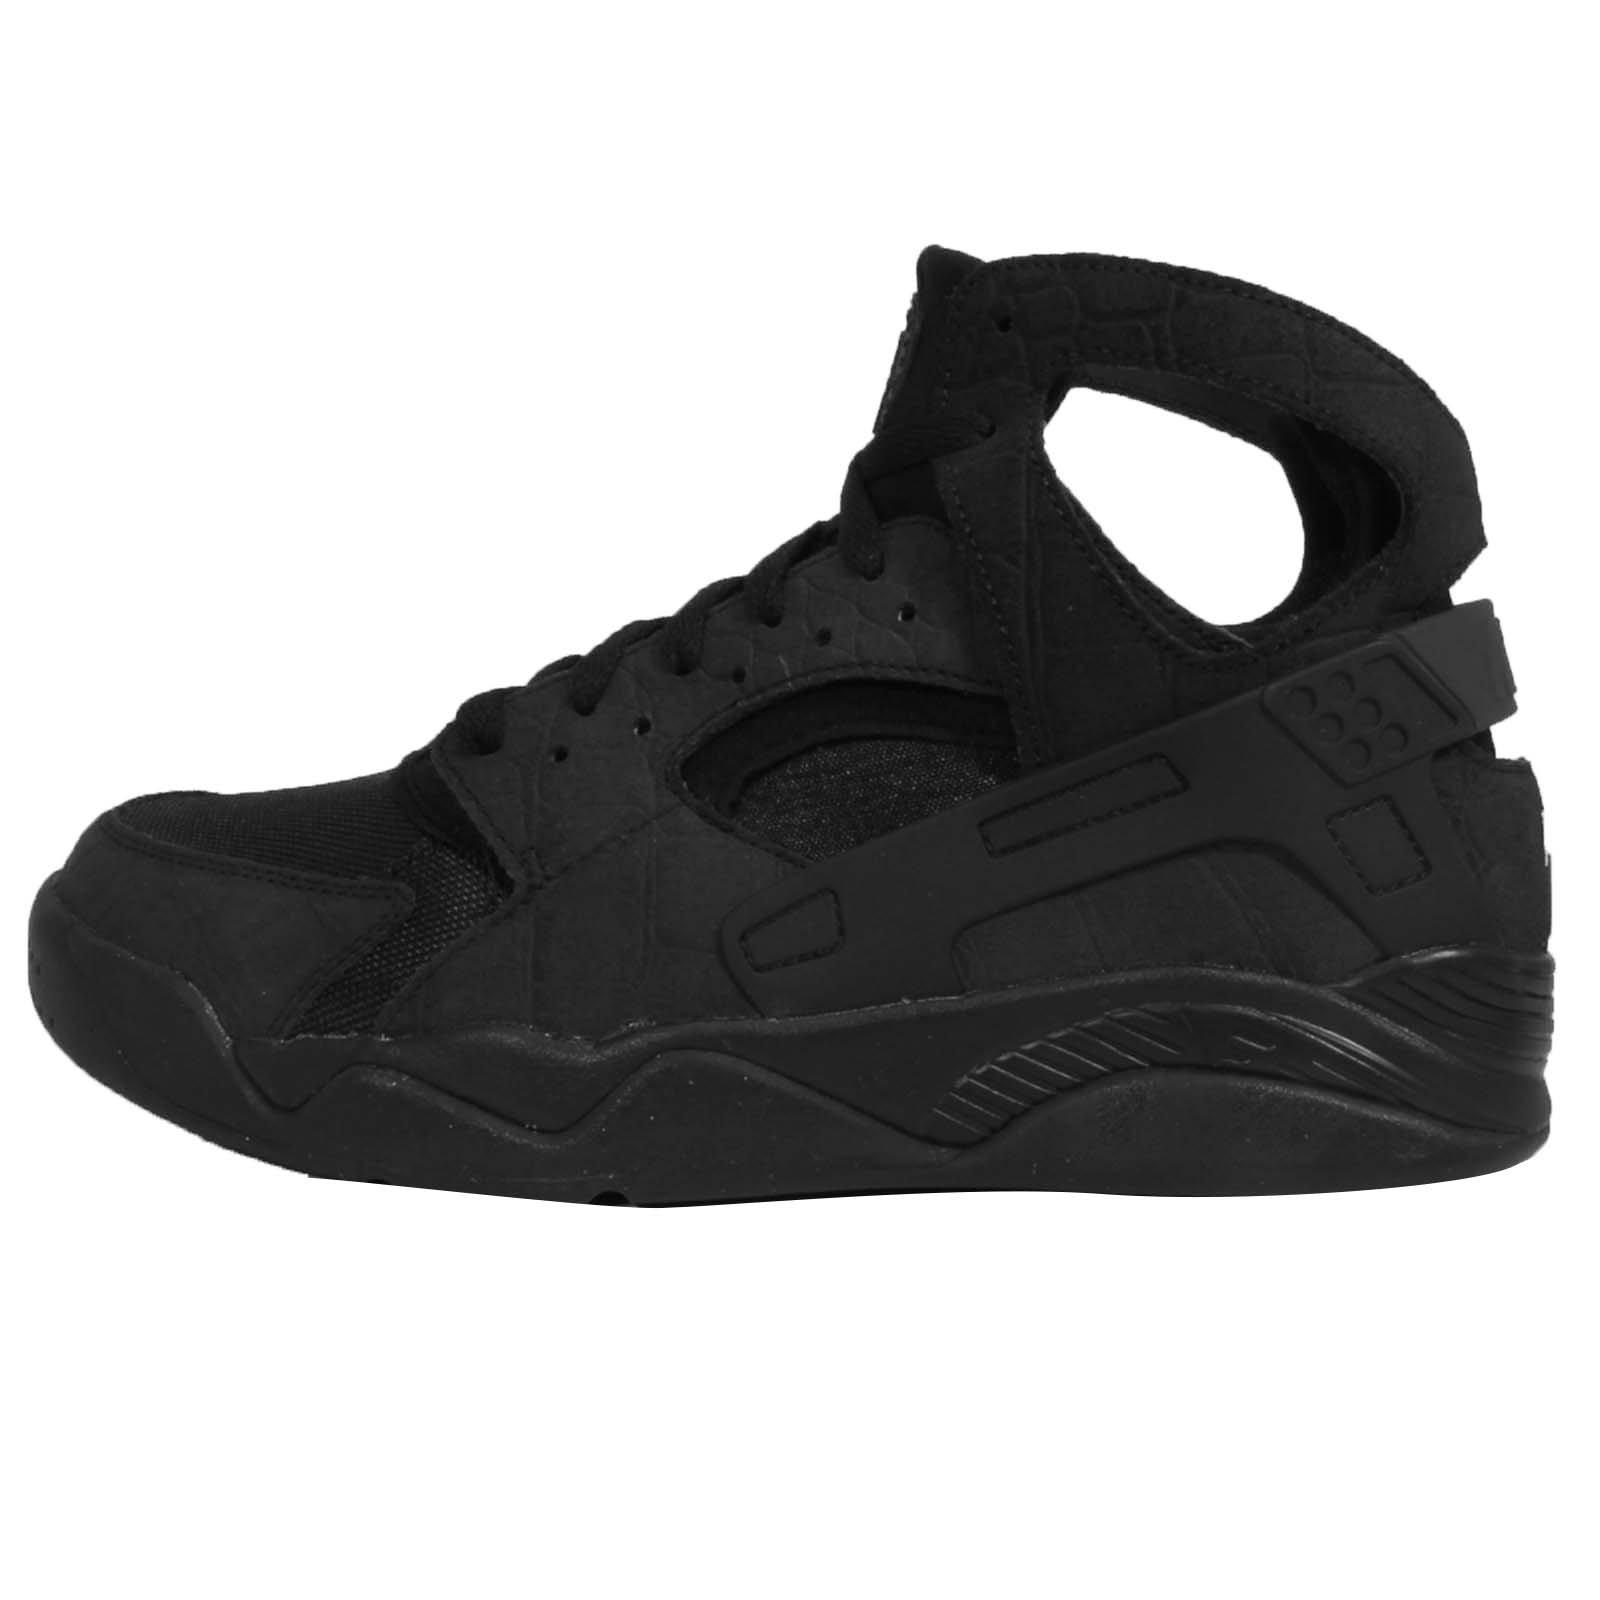 Nike Men's Air Flight Huarache, BLACK/BLACK-BLACK